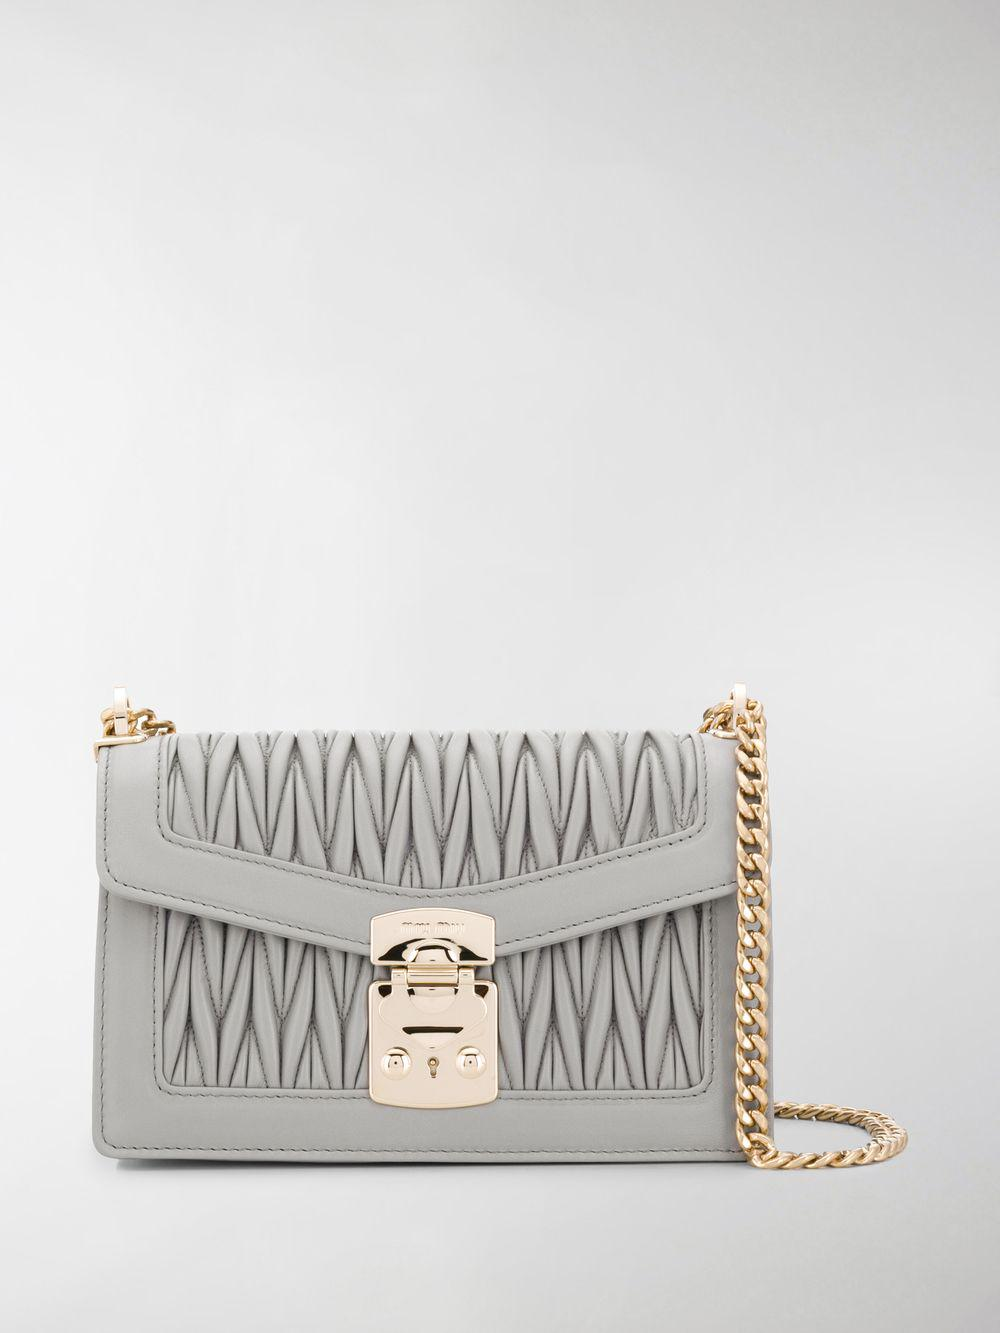 3b5753c46a0b Miu confidential chain bag in gray lyst jpg 1000x1333 Gray miu bag